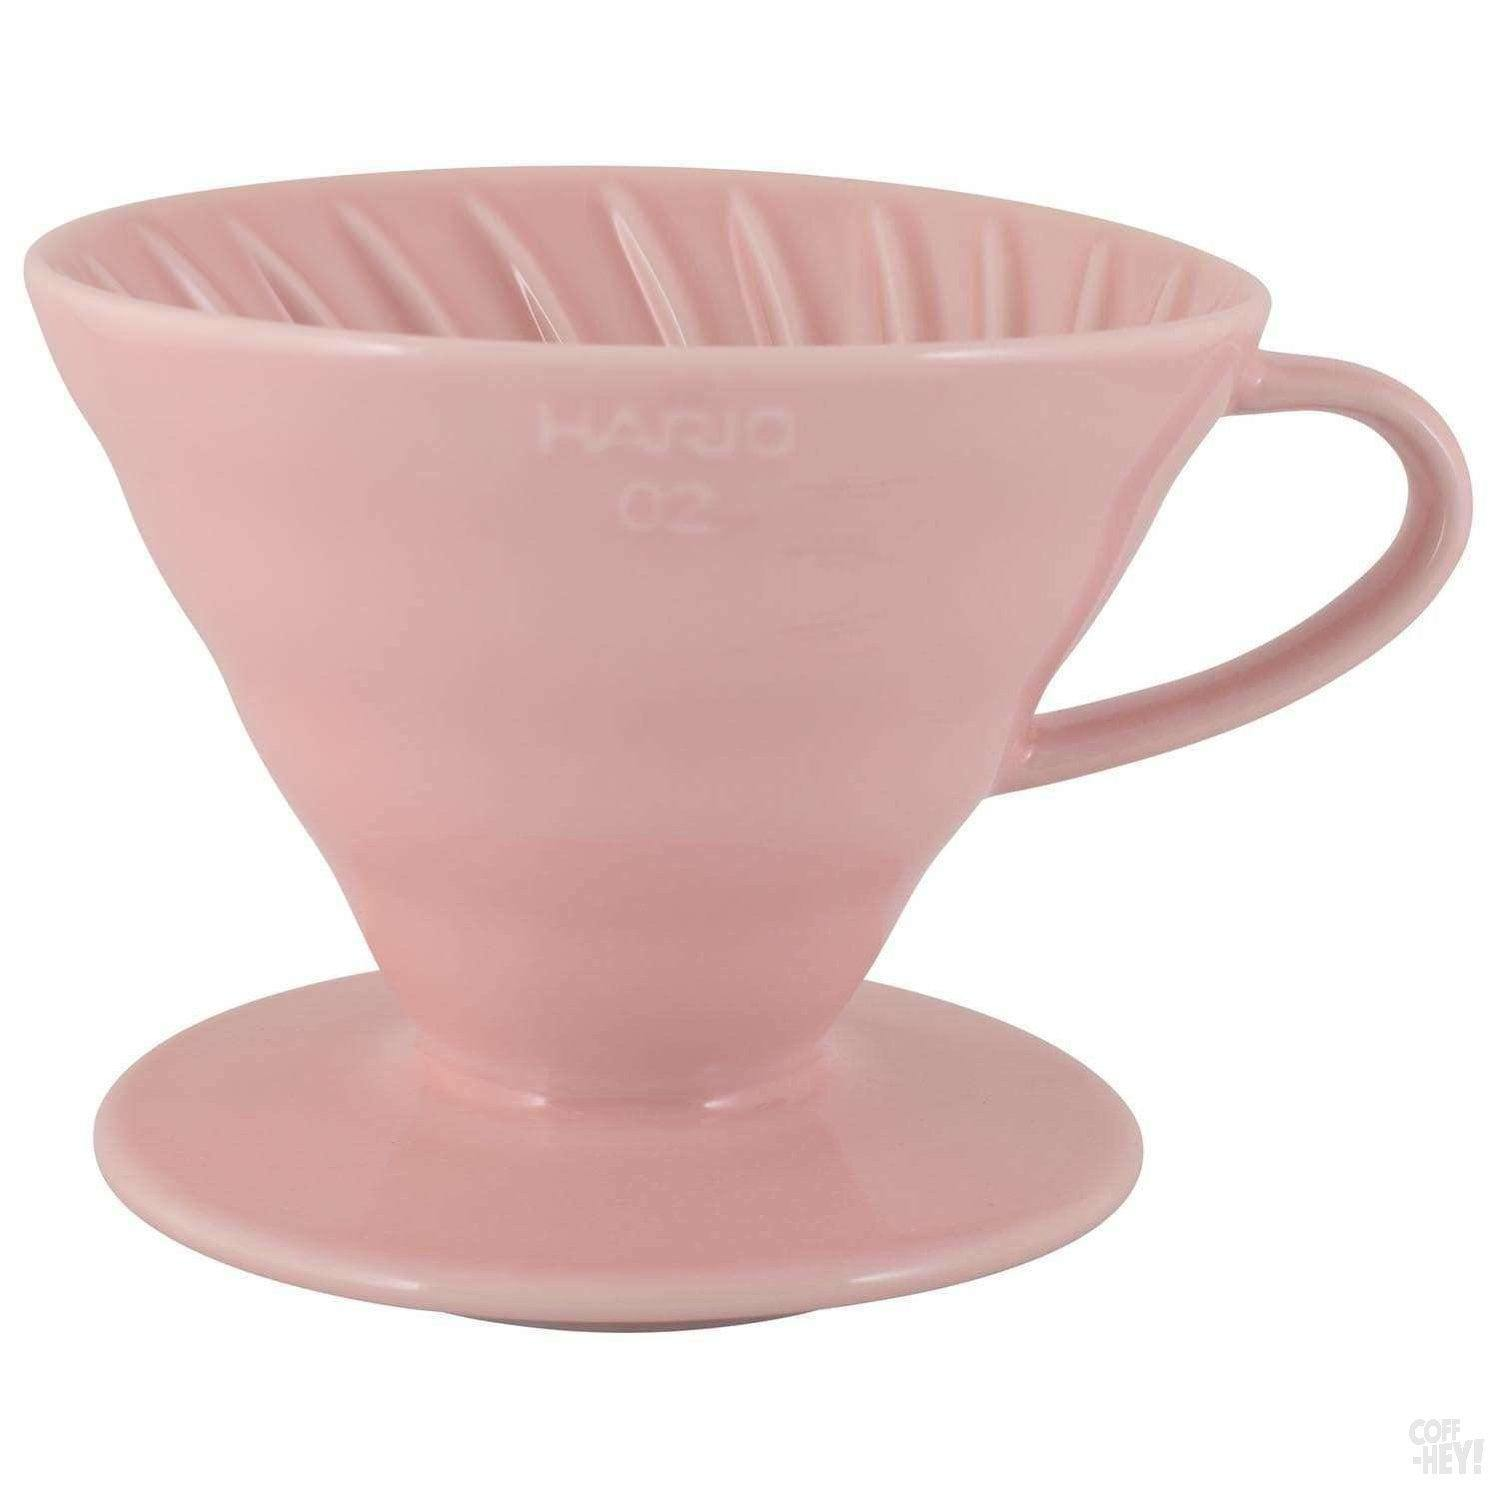 Hario Special Edition V60 02 Ceramic Dripper - Pink-Coffee Brewing-Hario-Coff-Hey!